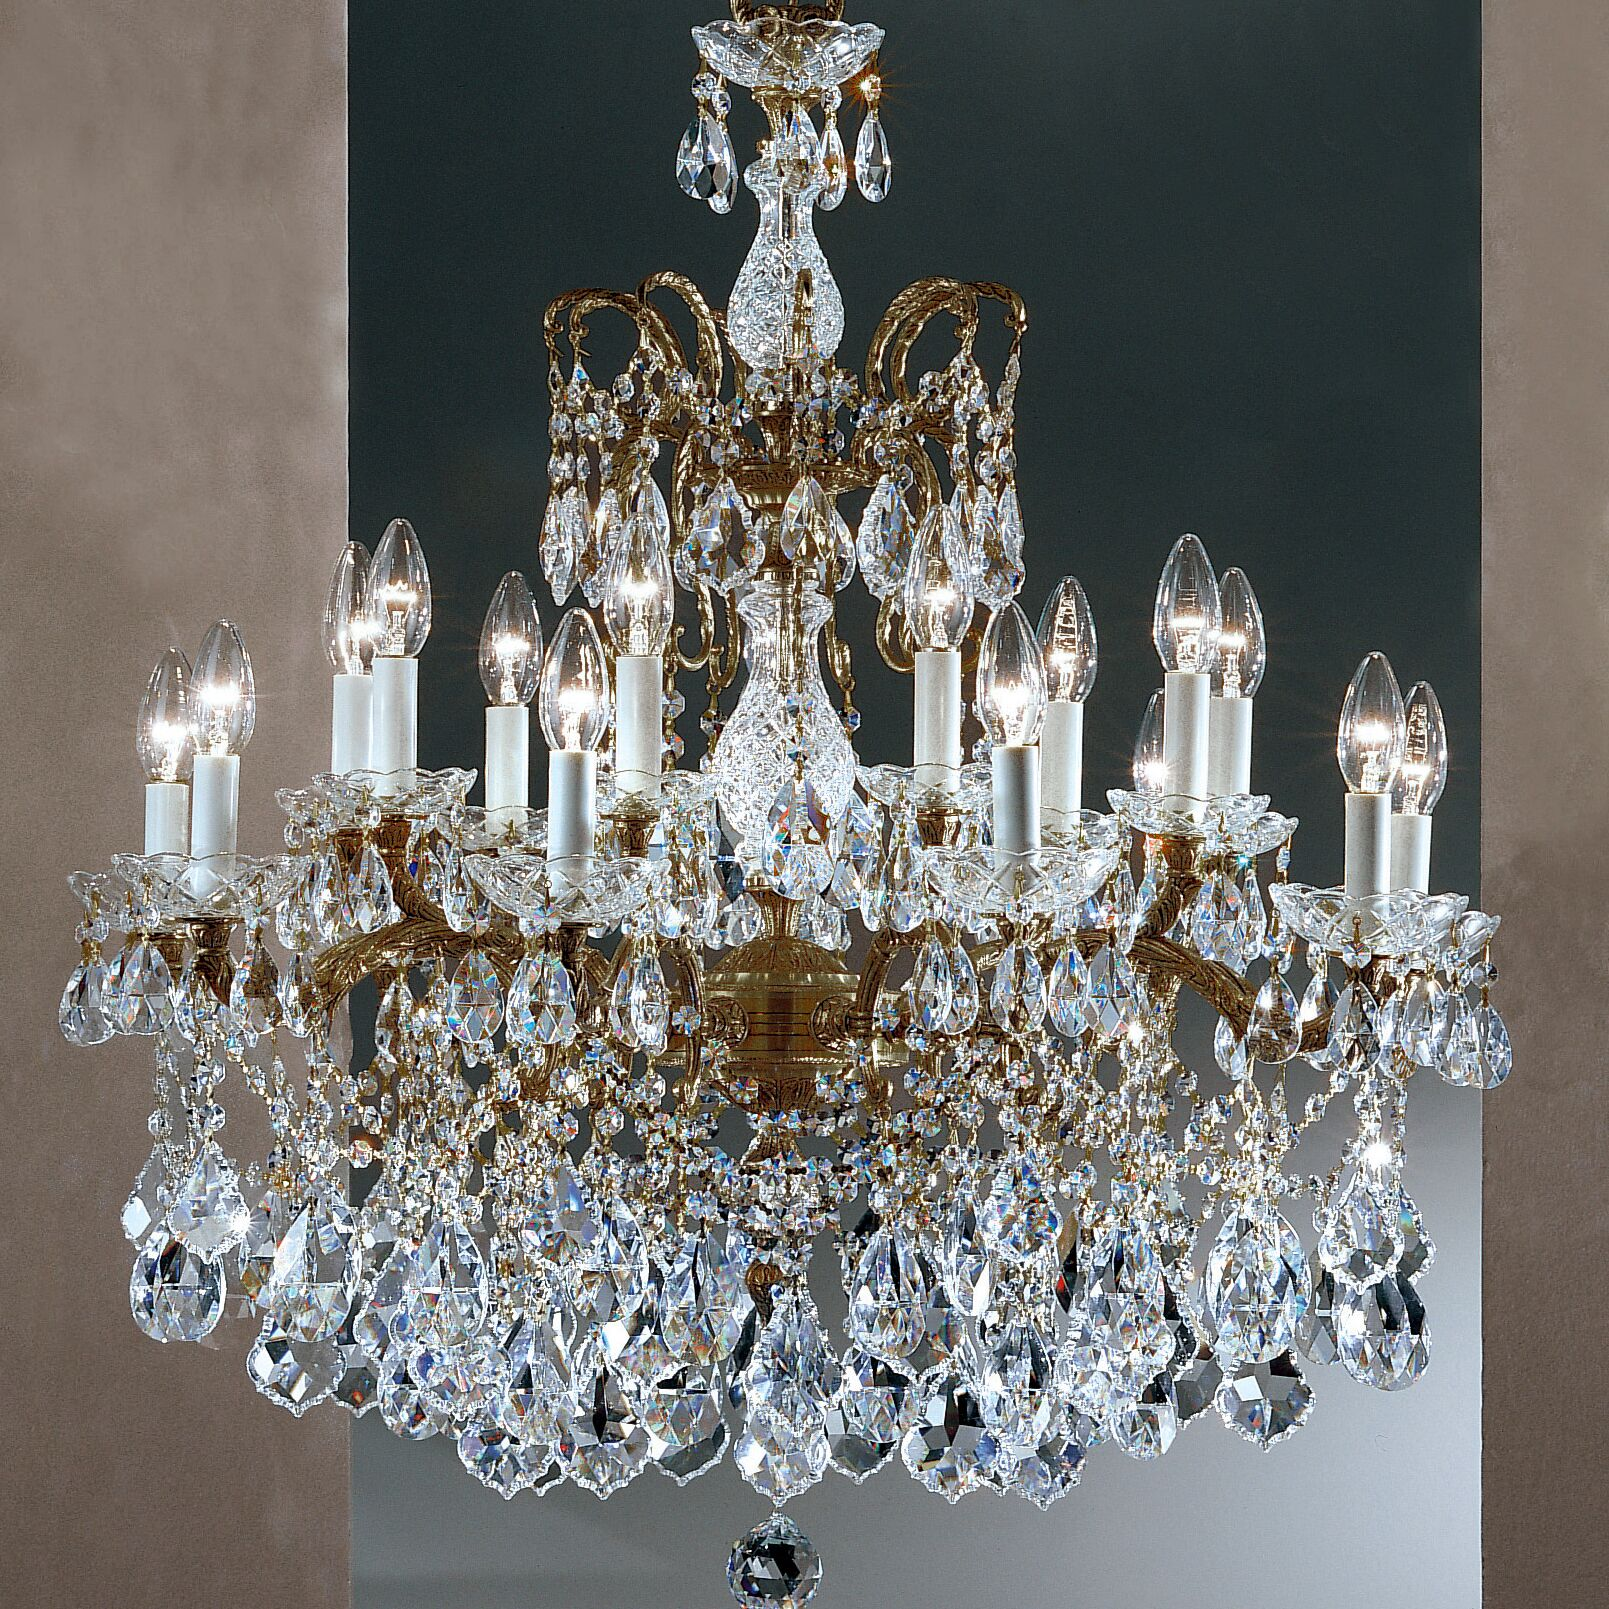 Madrid Imperial 18-Light Candle Style Chandelier Finish: Roman Bronze, Crystal Type: Swarovski Elements